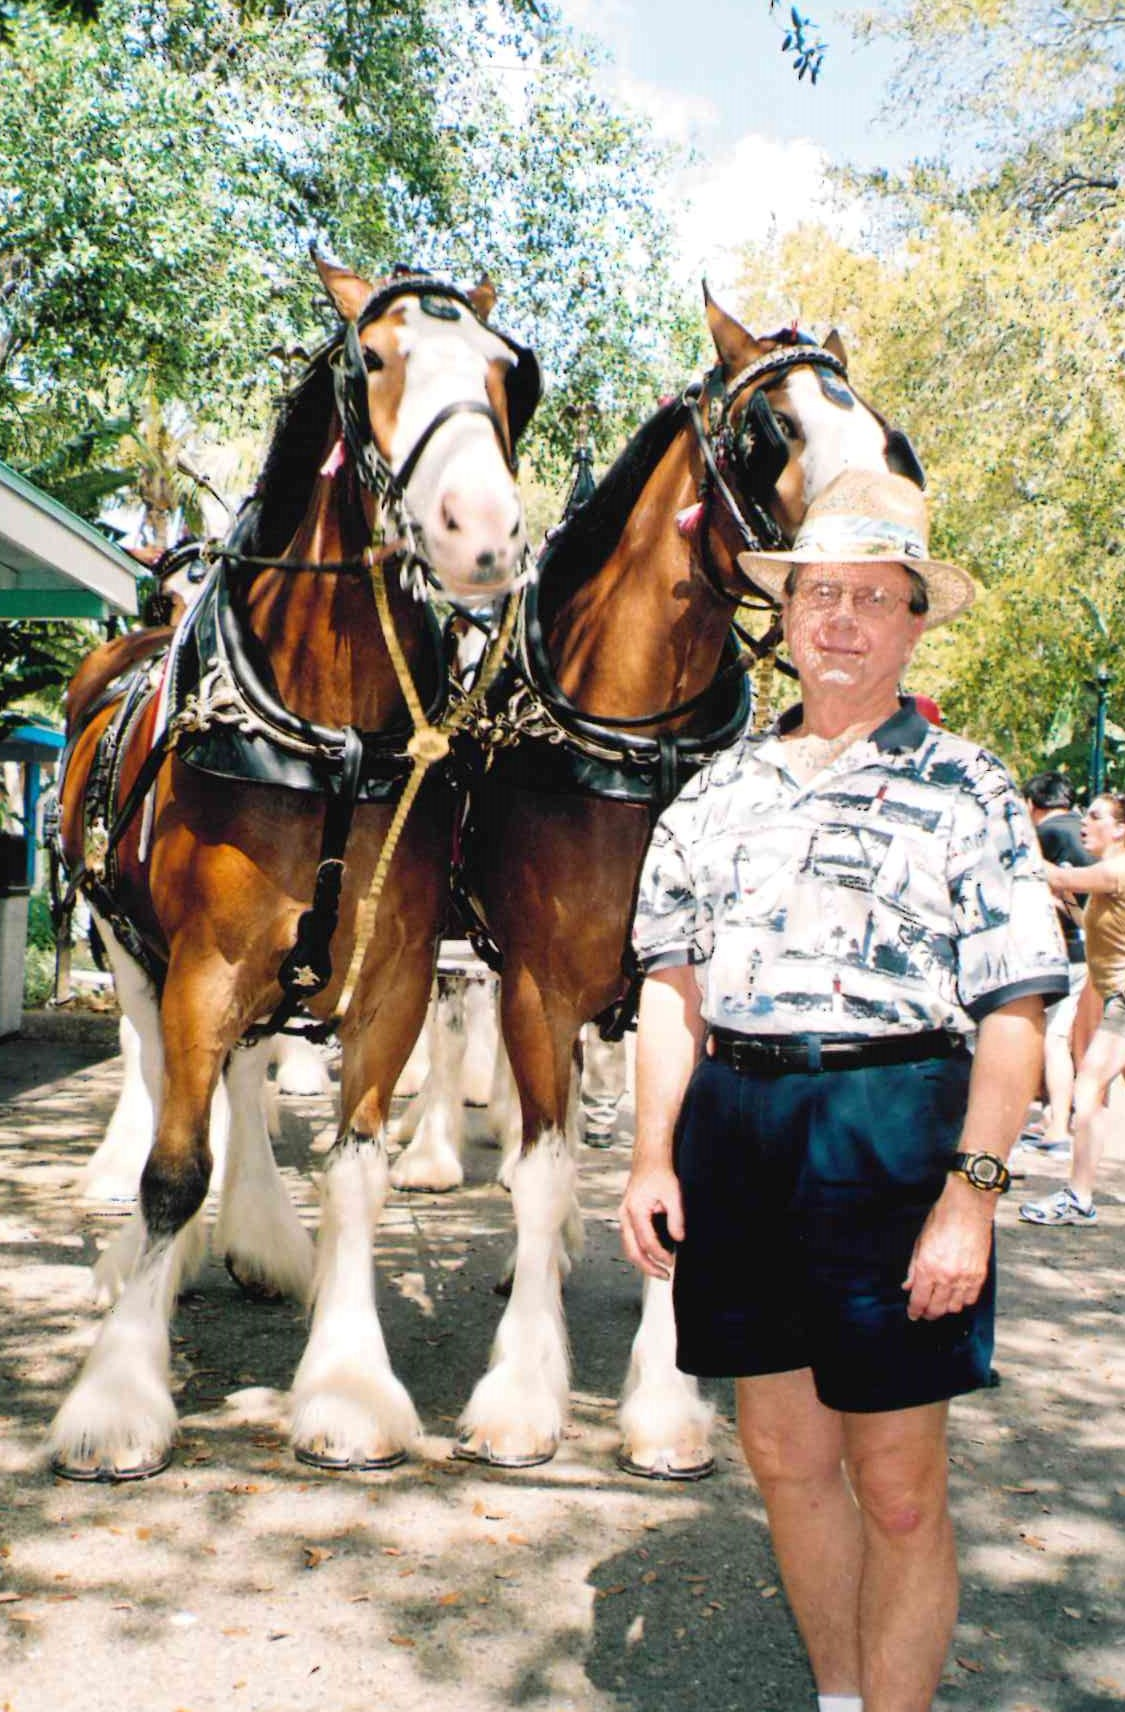 He loved the horses